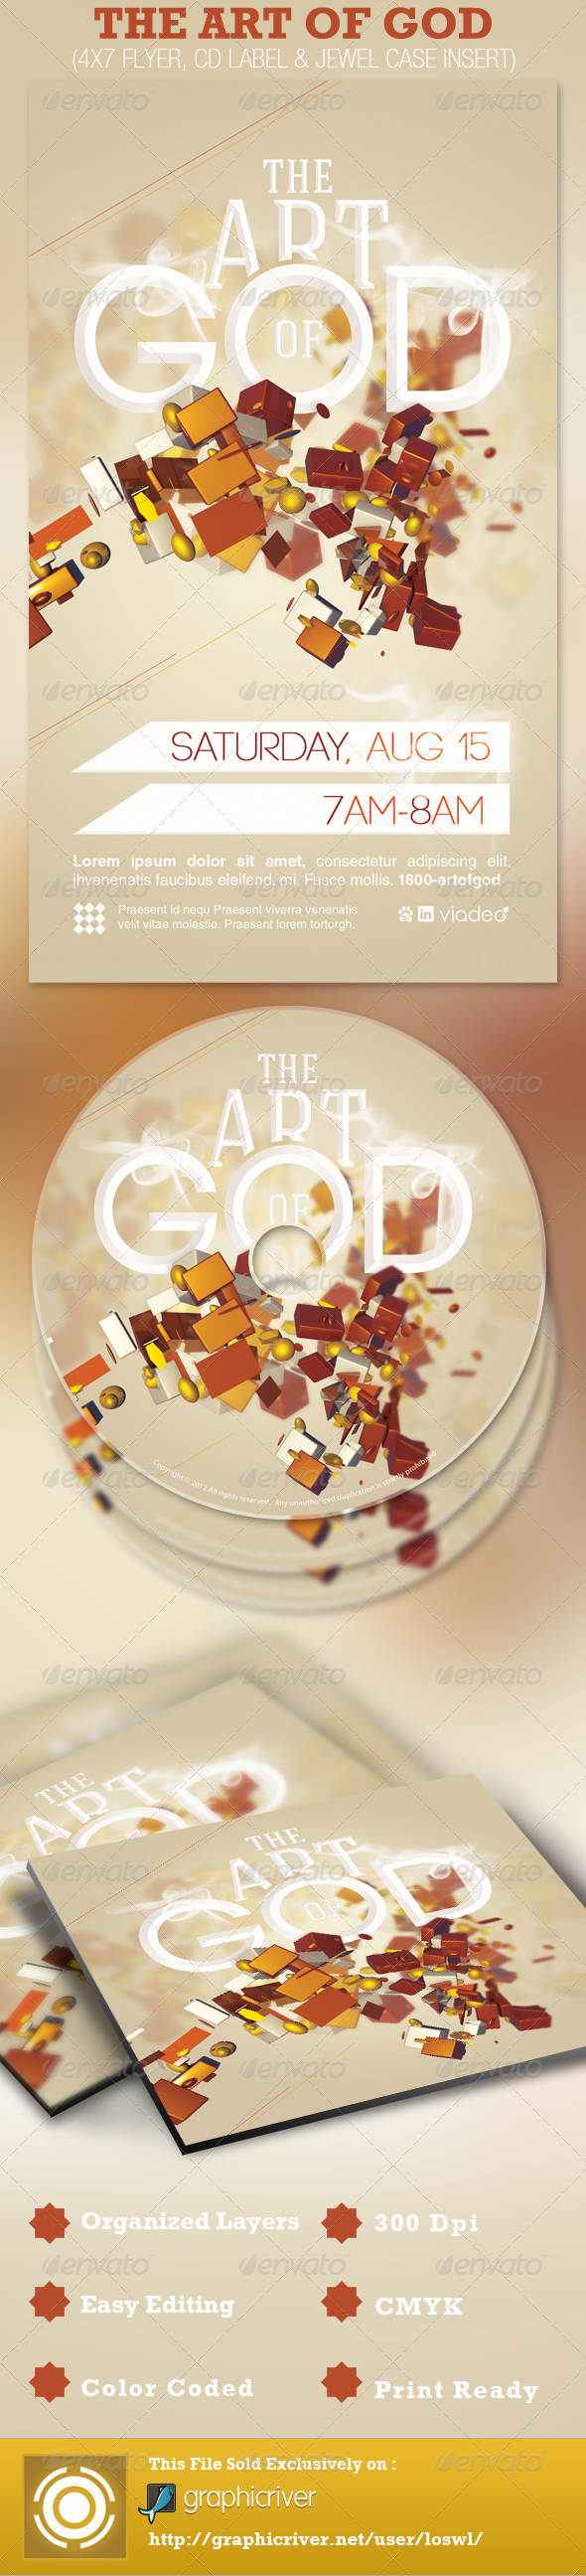 The Art of God Church Flyer and CD Template - Church Flyers